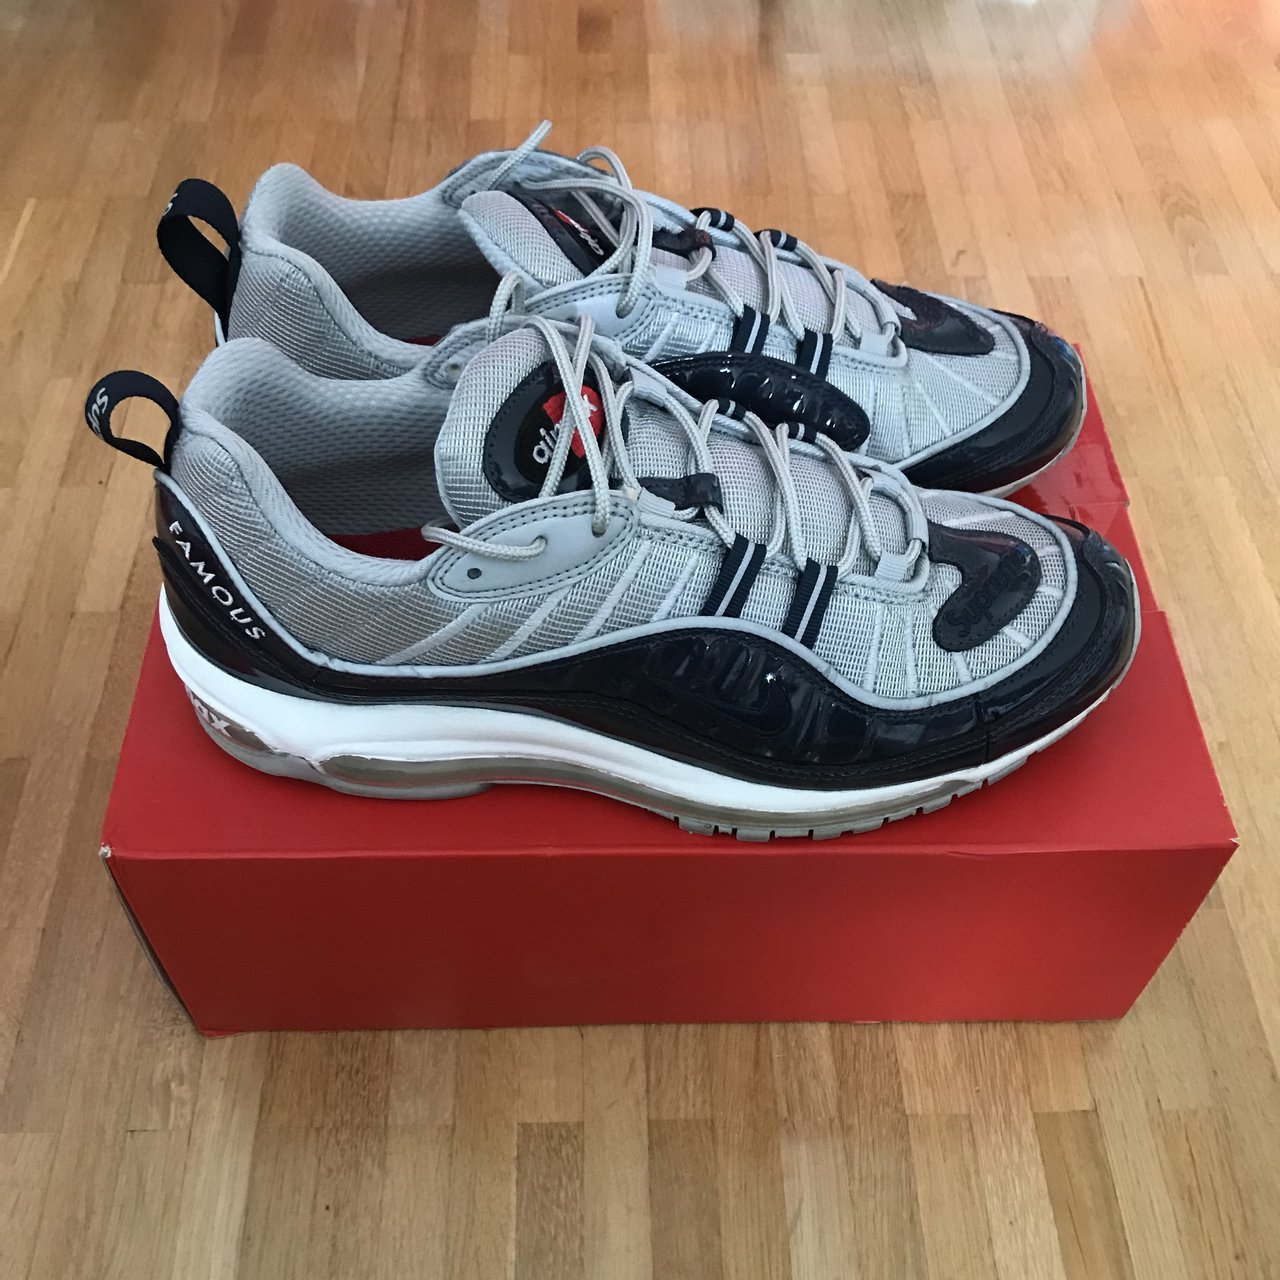 787e79b702aeb7 Nike Air Max 98 Supreme Colorway  navy grey Condition  used - Depop